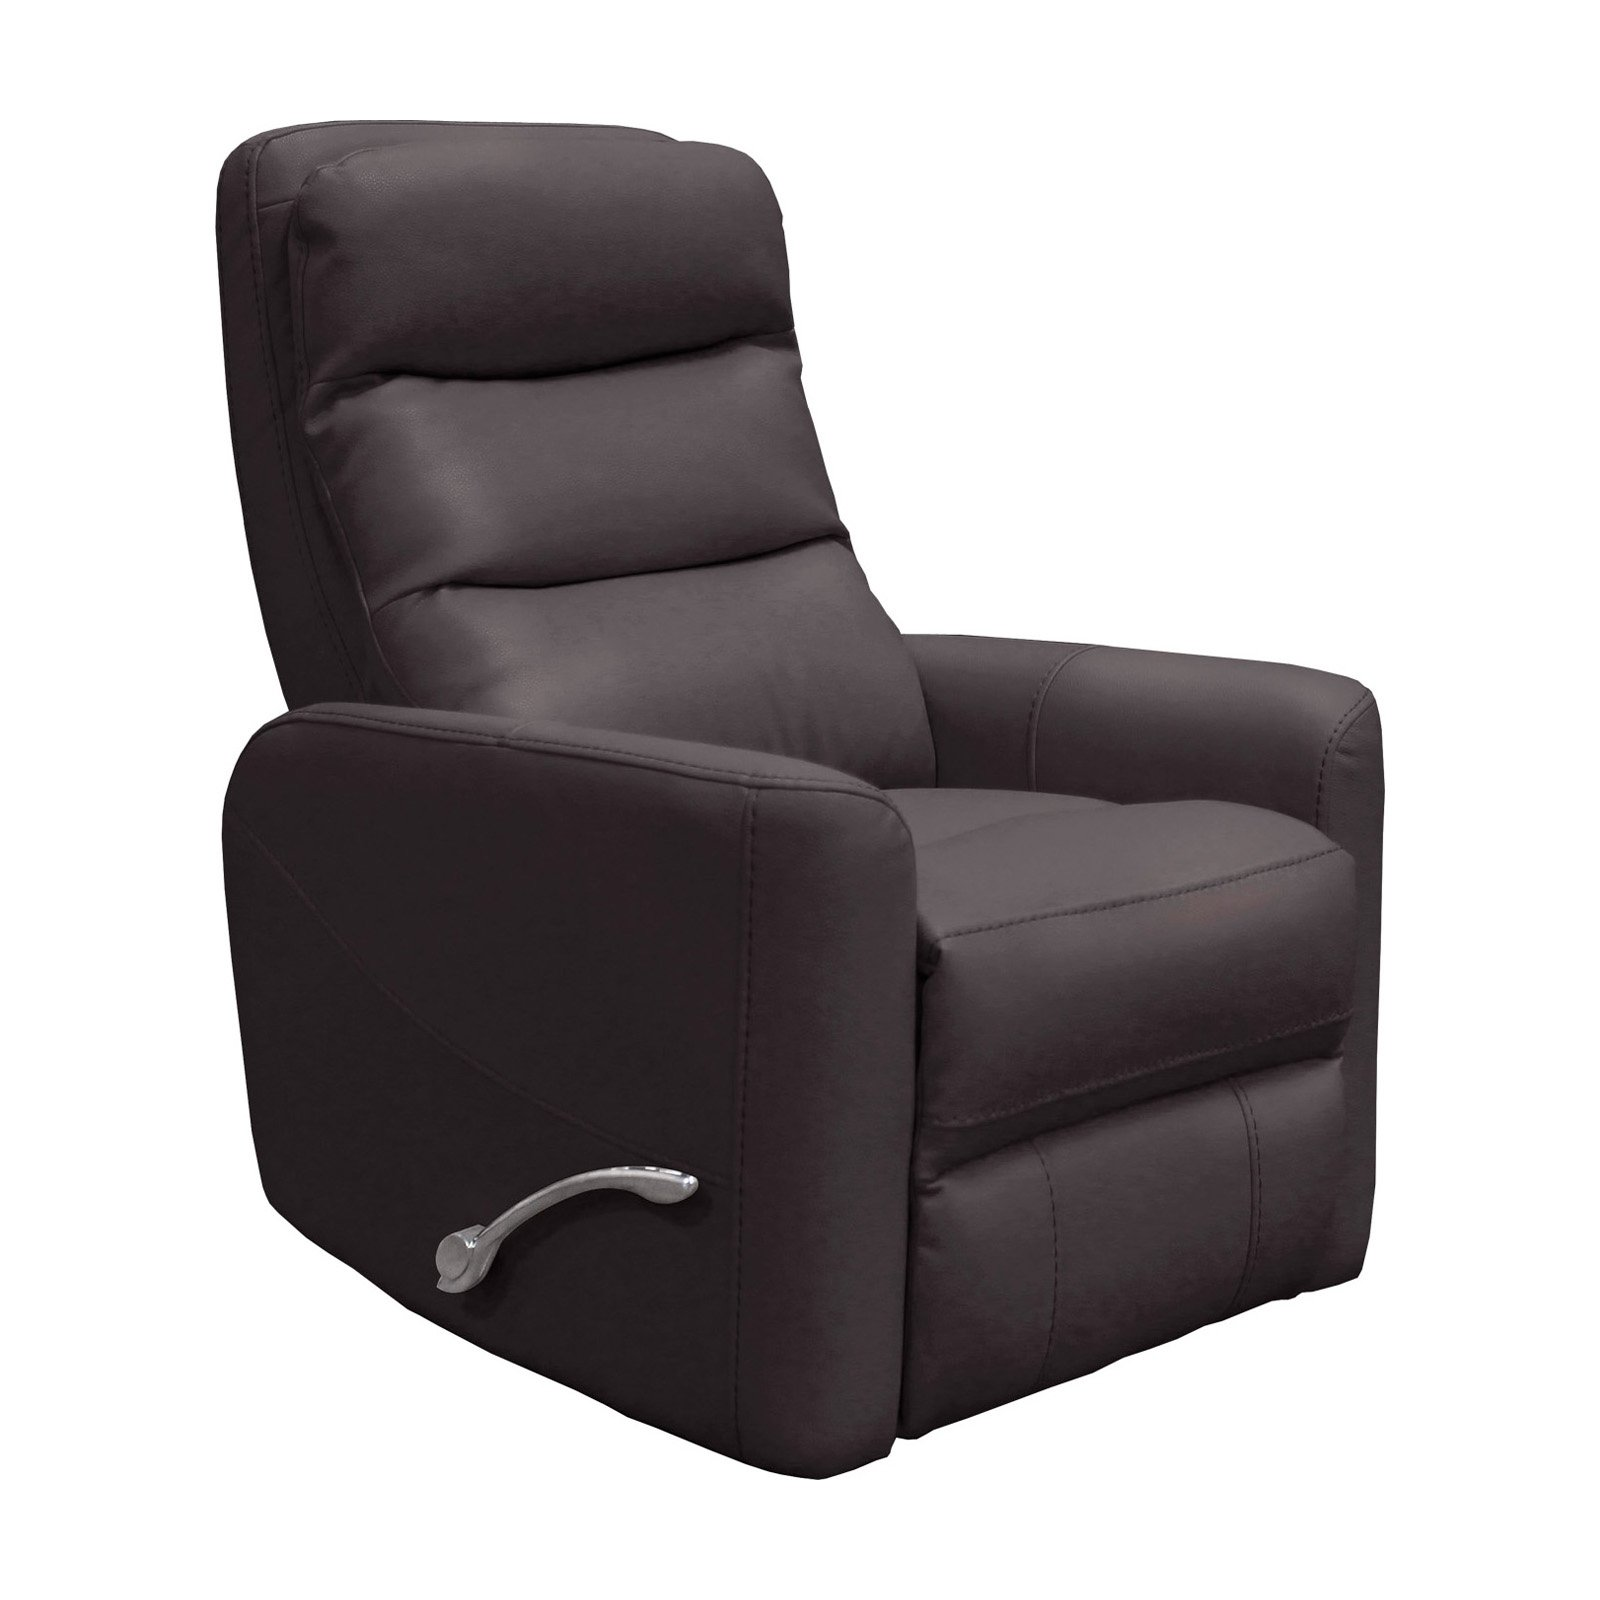 parker house hercules swivel glider recliner with articulating headrest